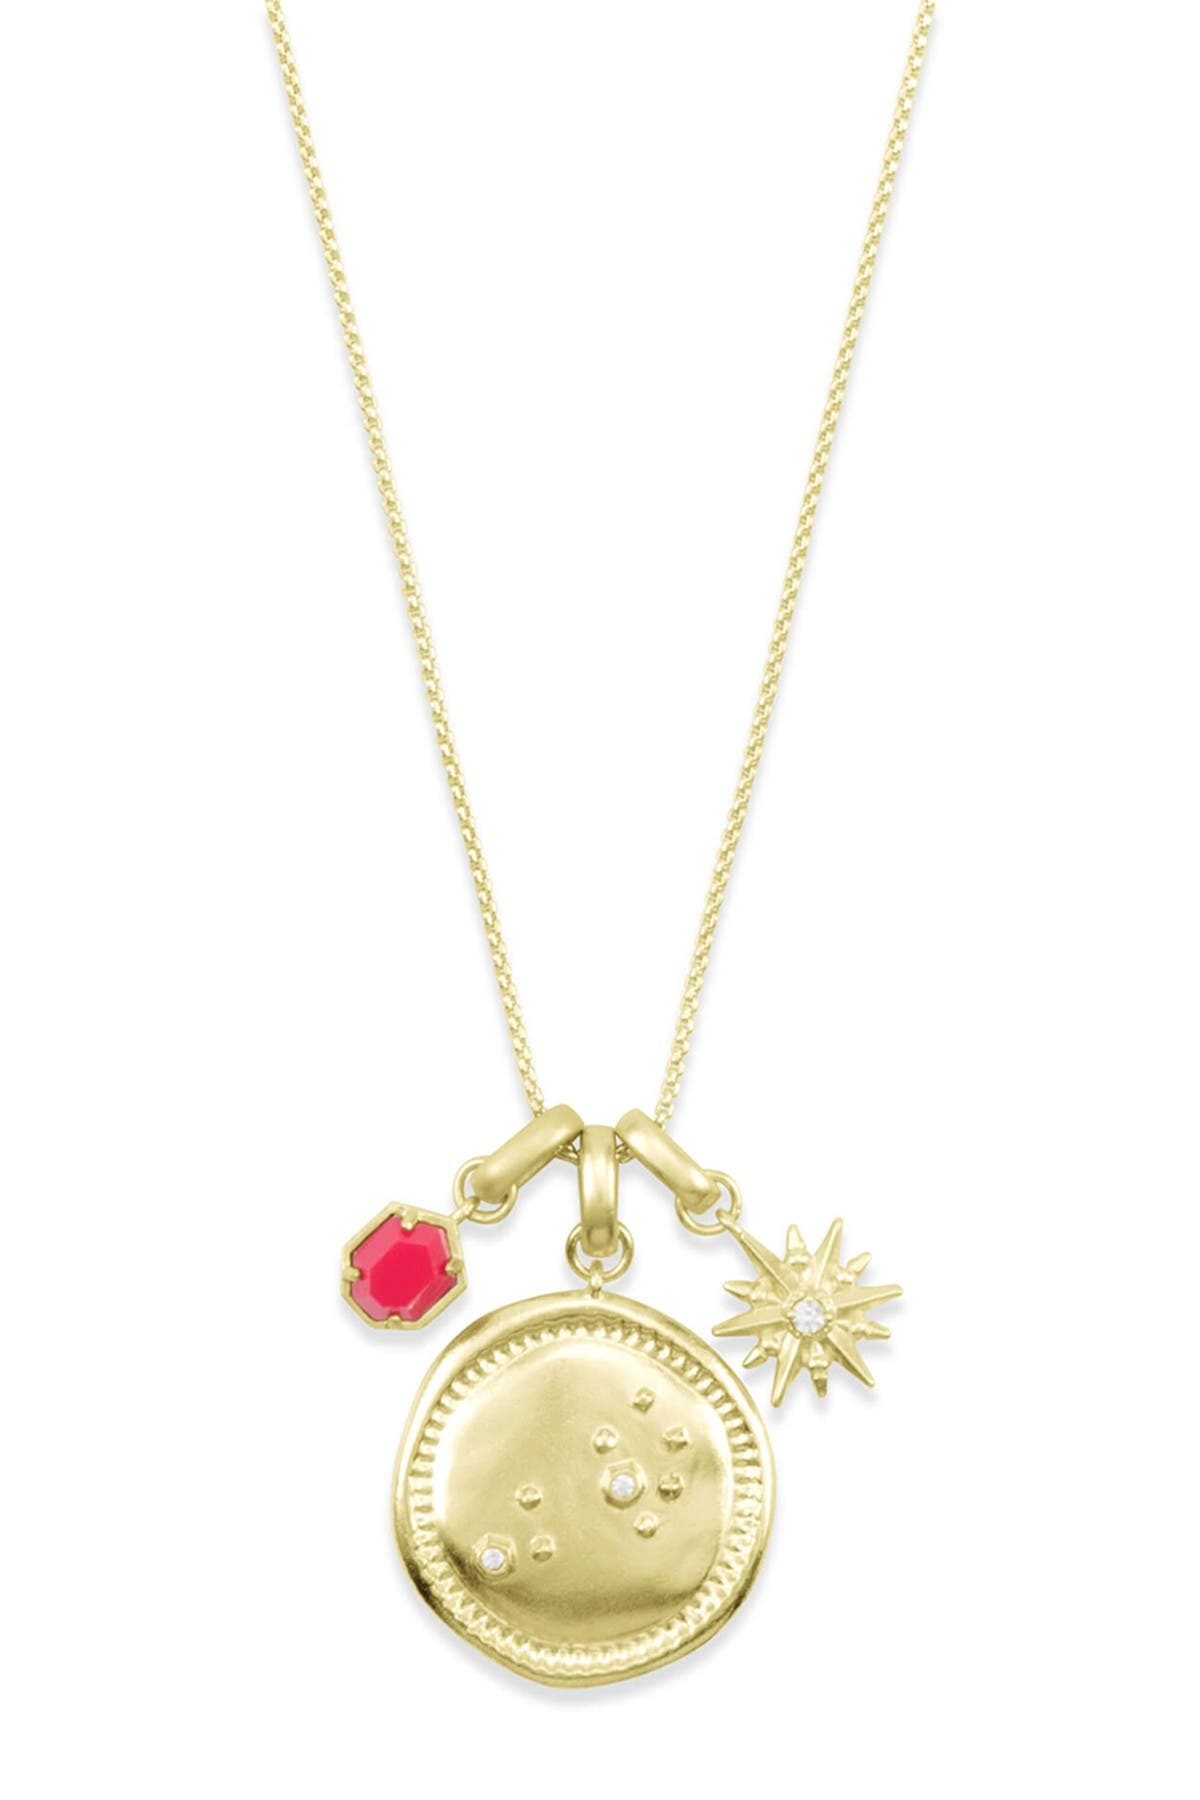 Image of Kendra Scott 14K Gold Plated Leo Charm Necklace